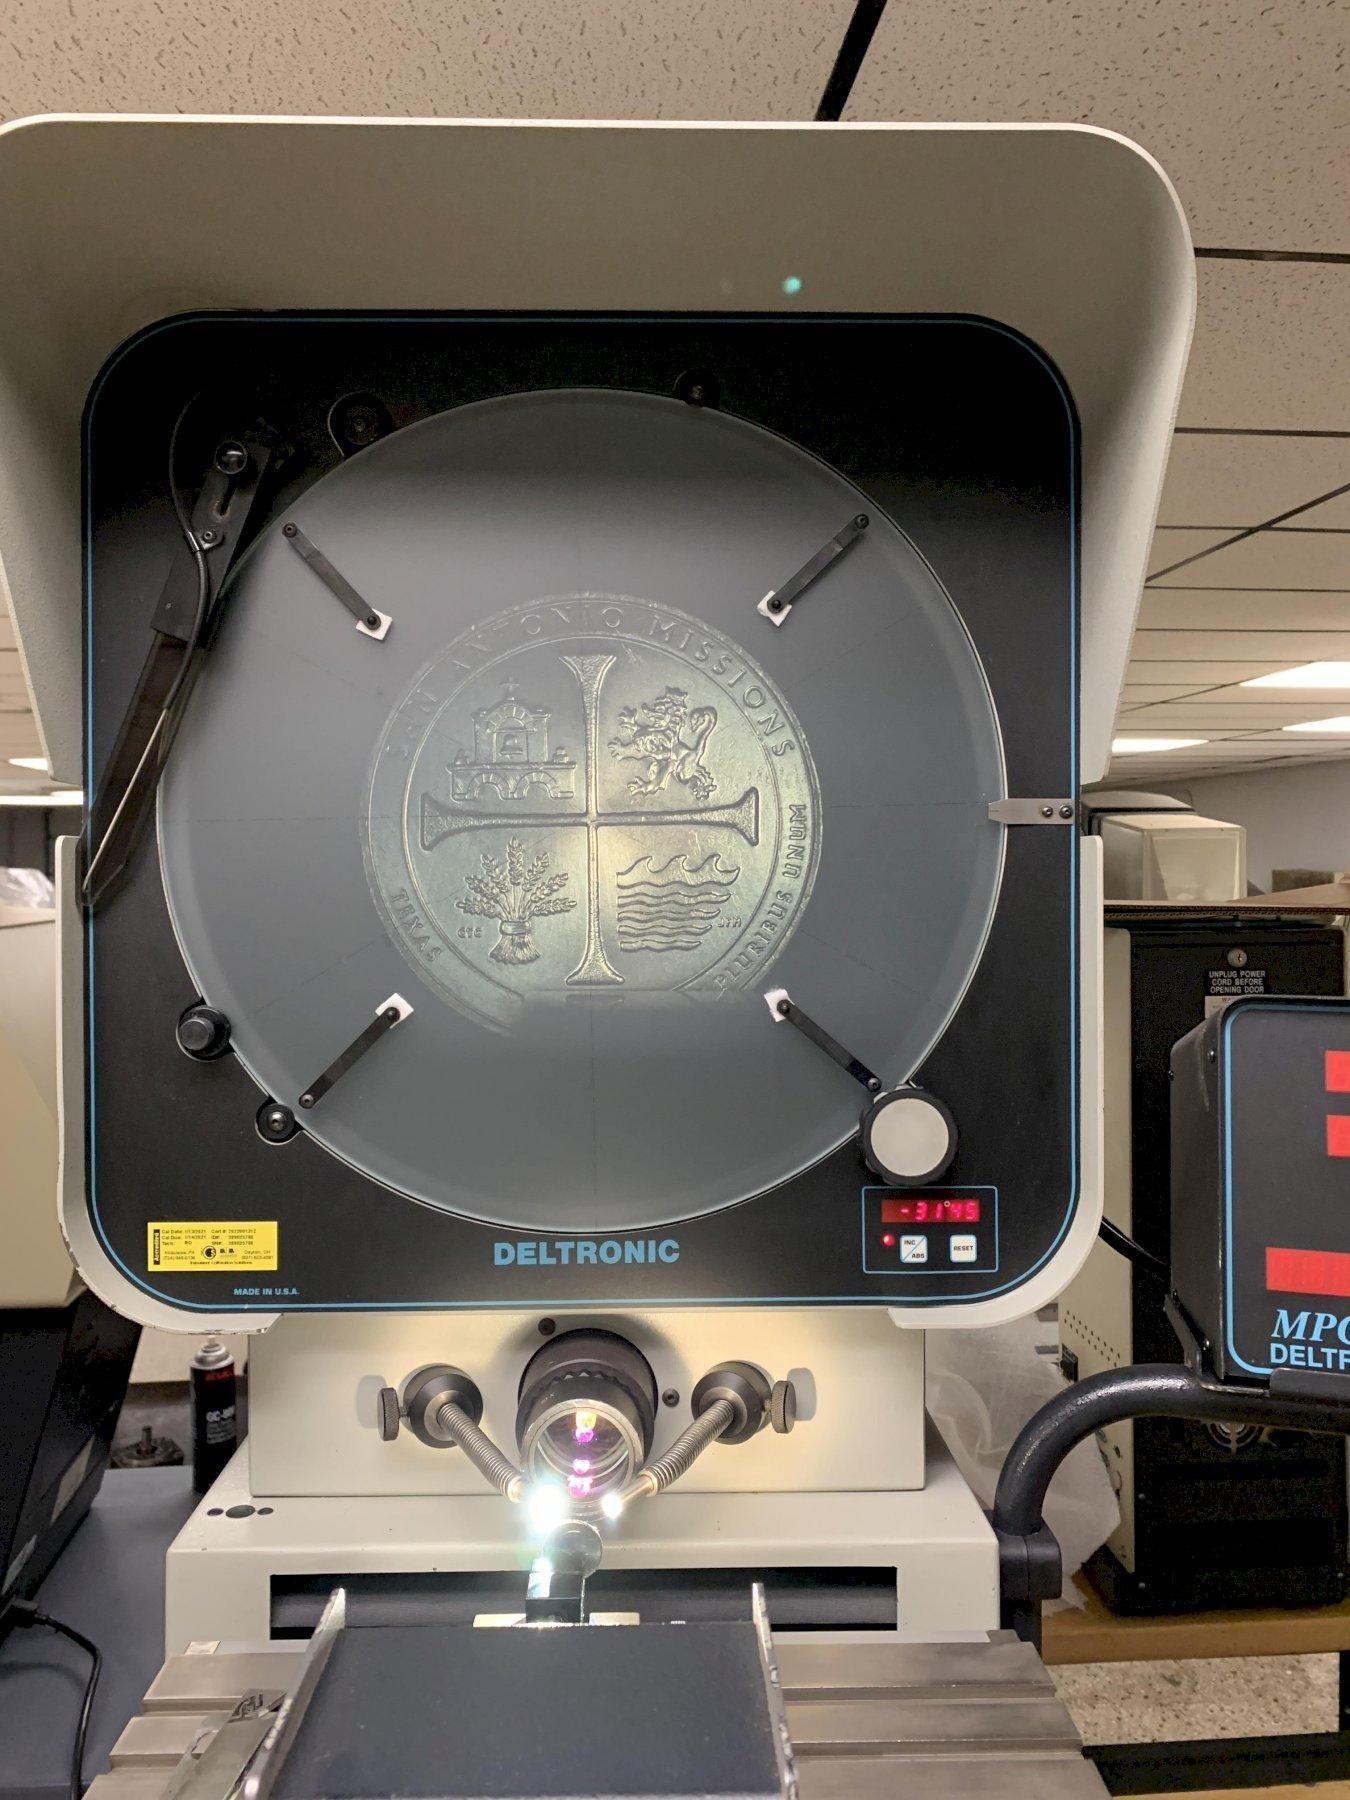 """16"""" Deltronic Model DH216 Bench Top Optical Comparator, S/N 389035768, New 1998."""